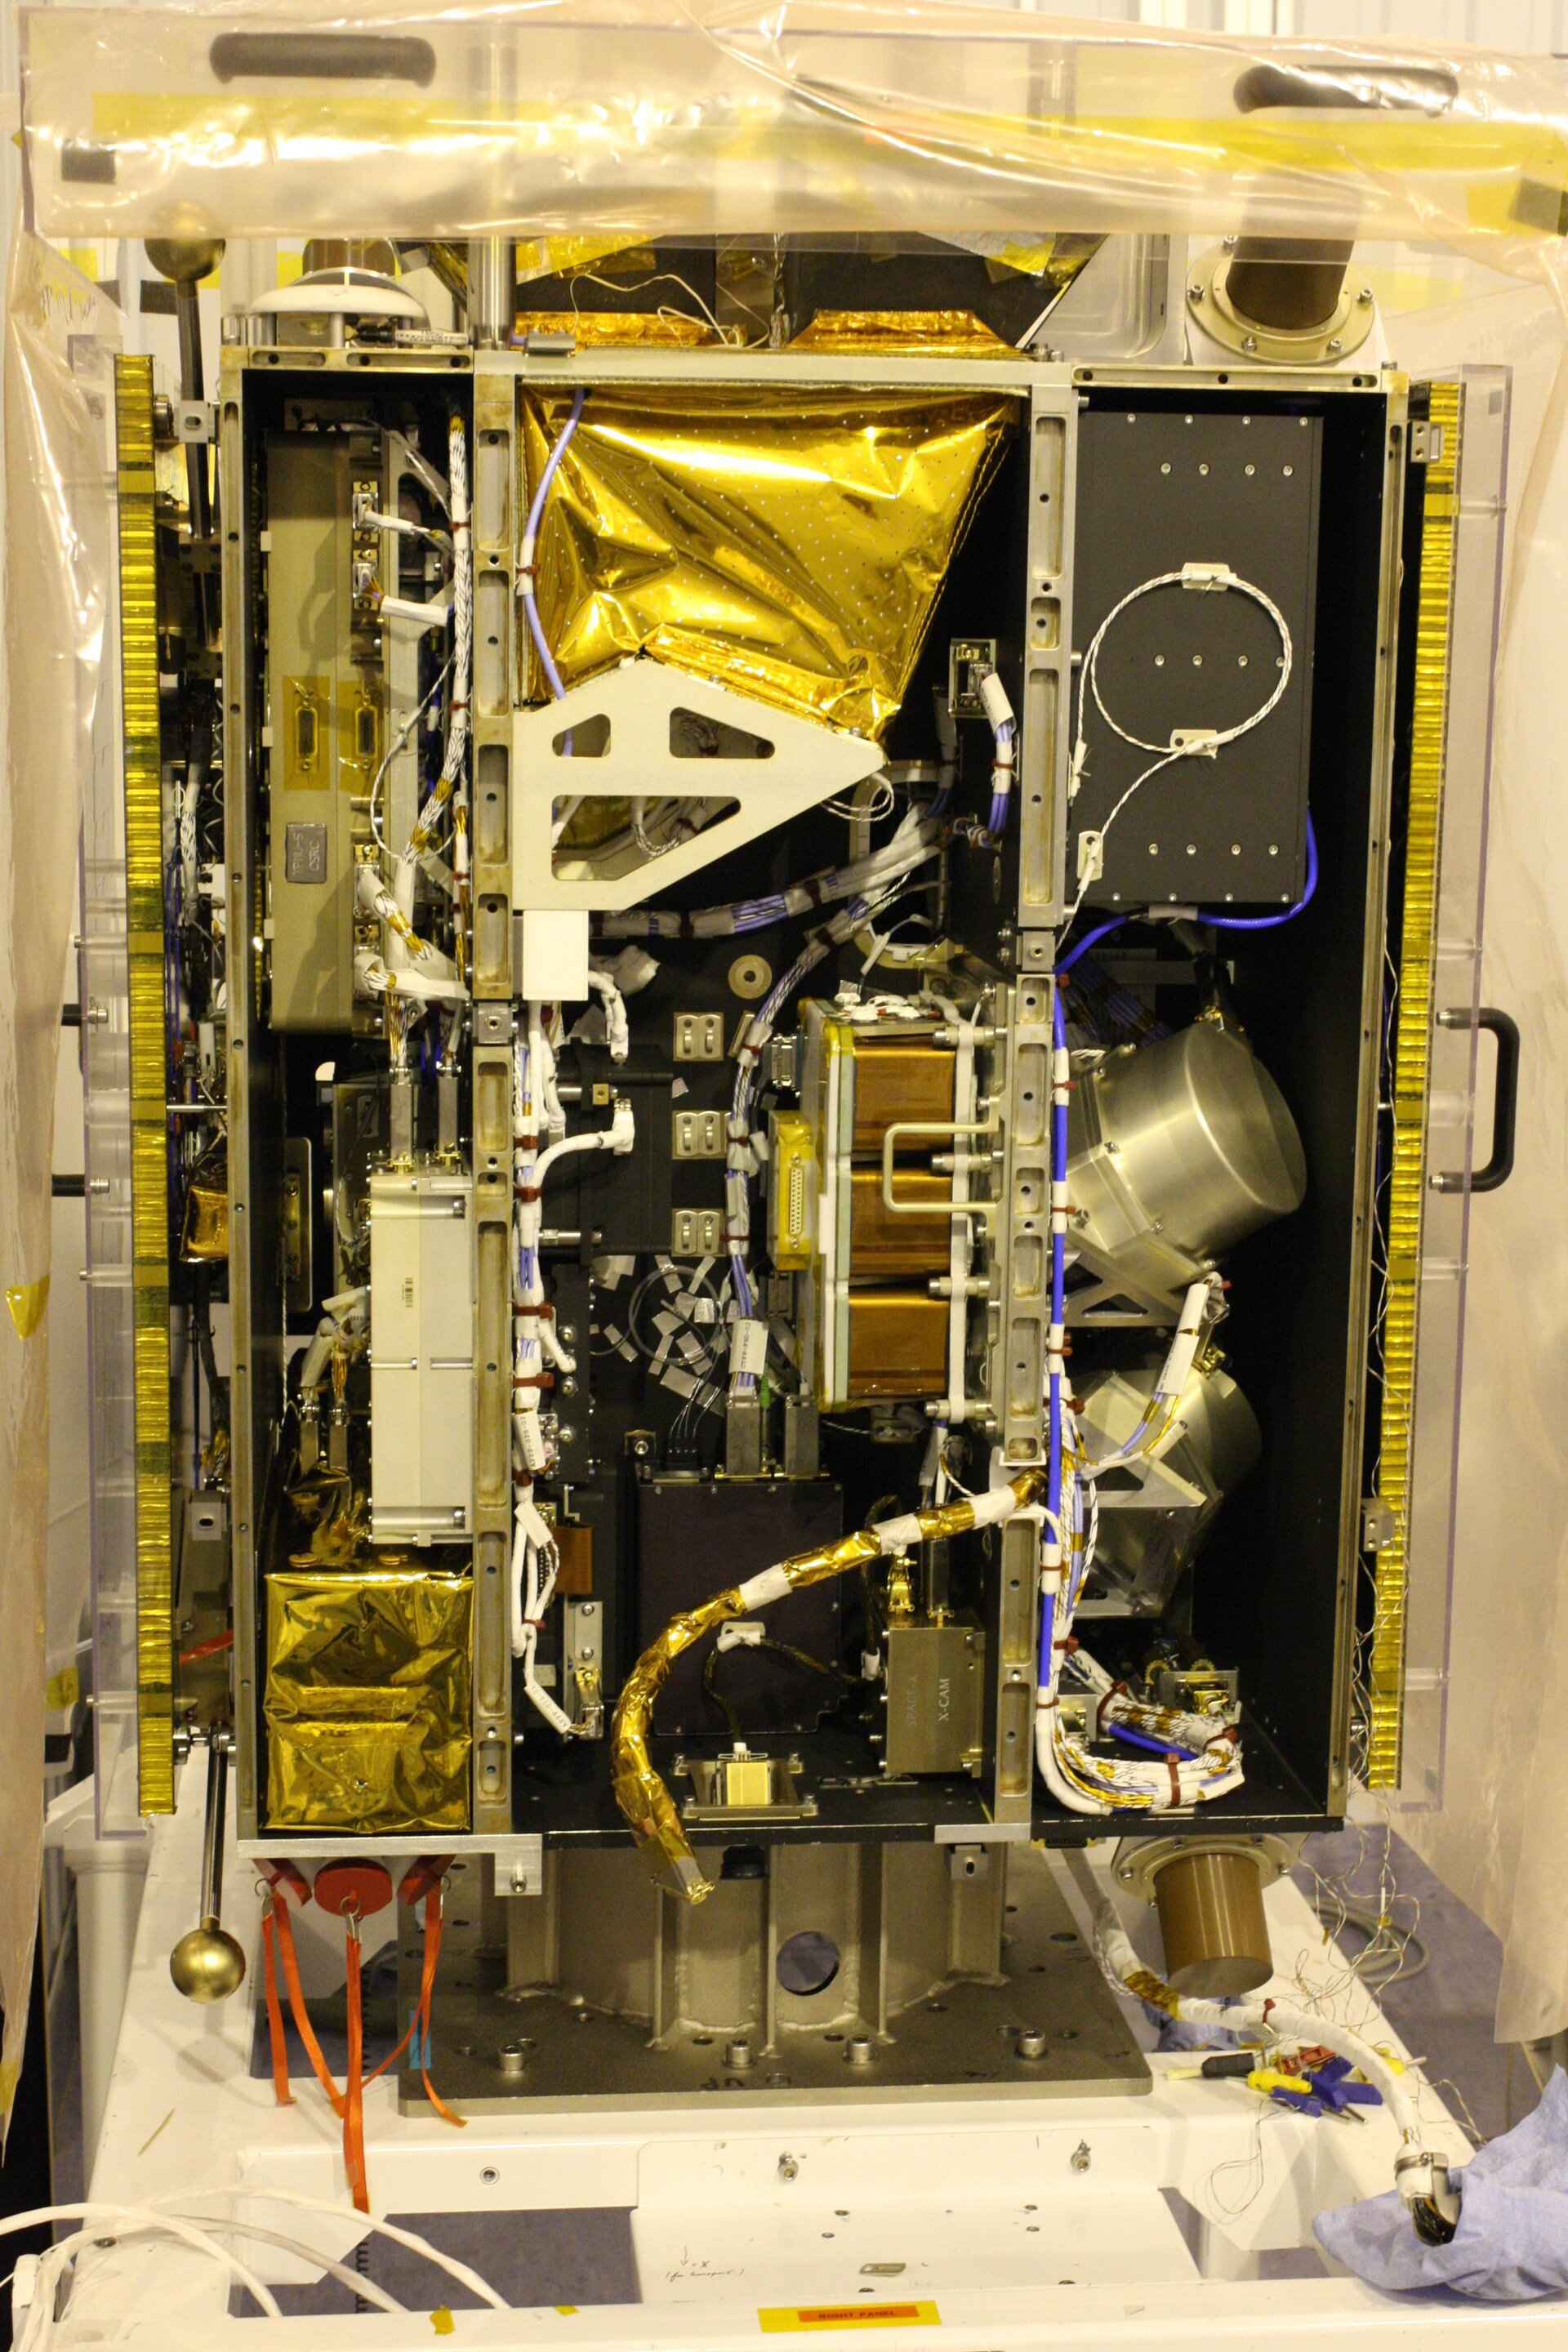 Inside view of spacecraft with battery mounted, prior to closure